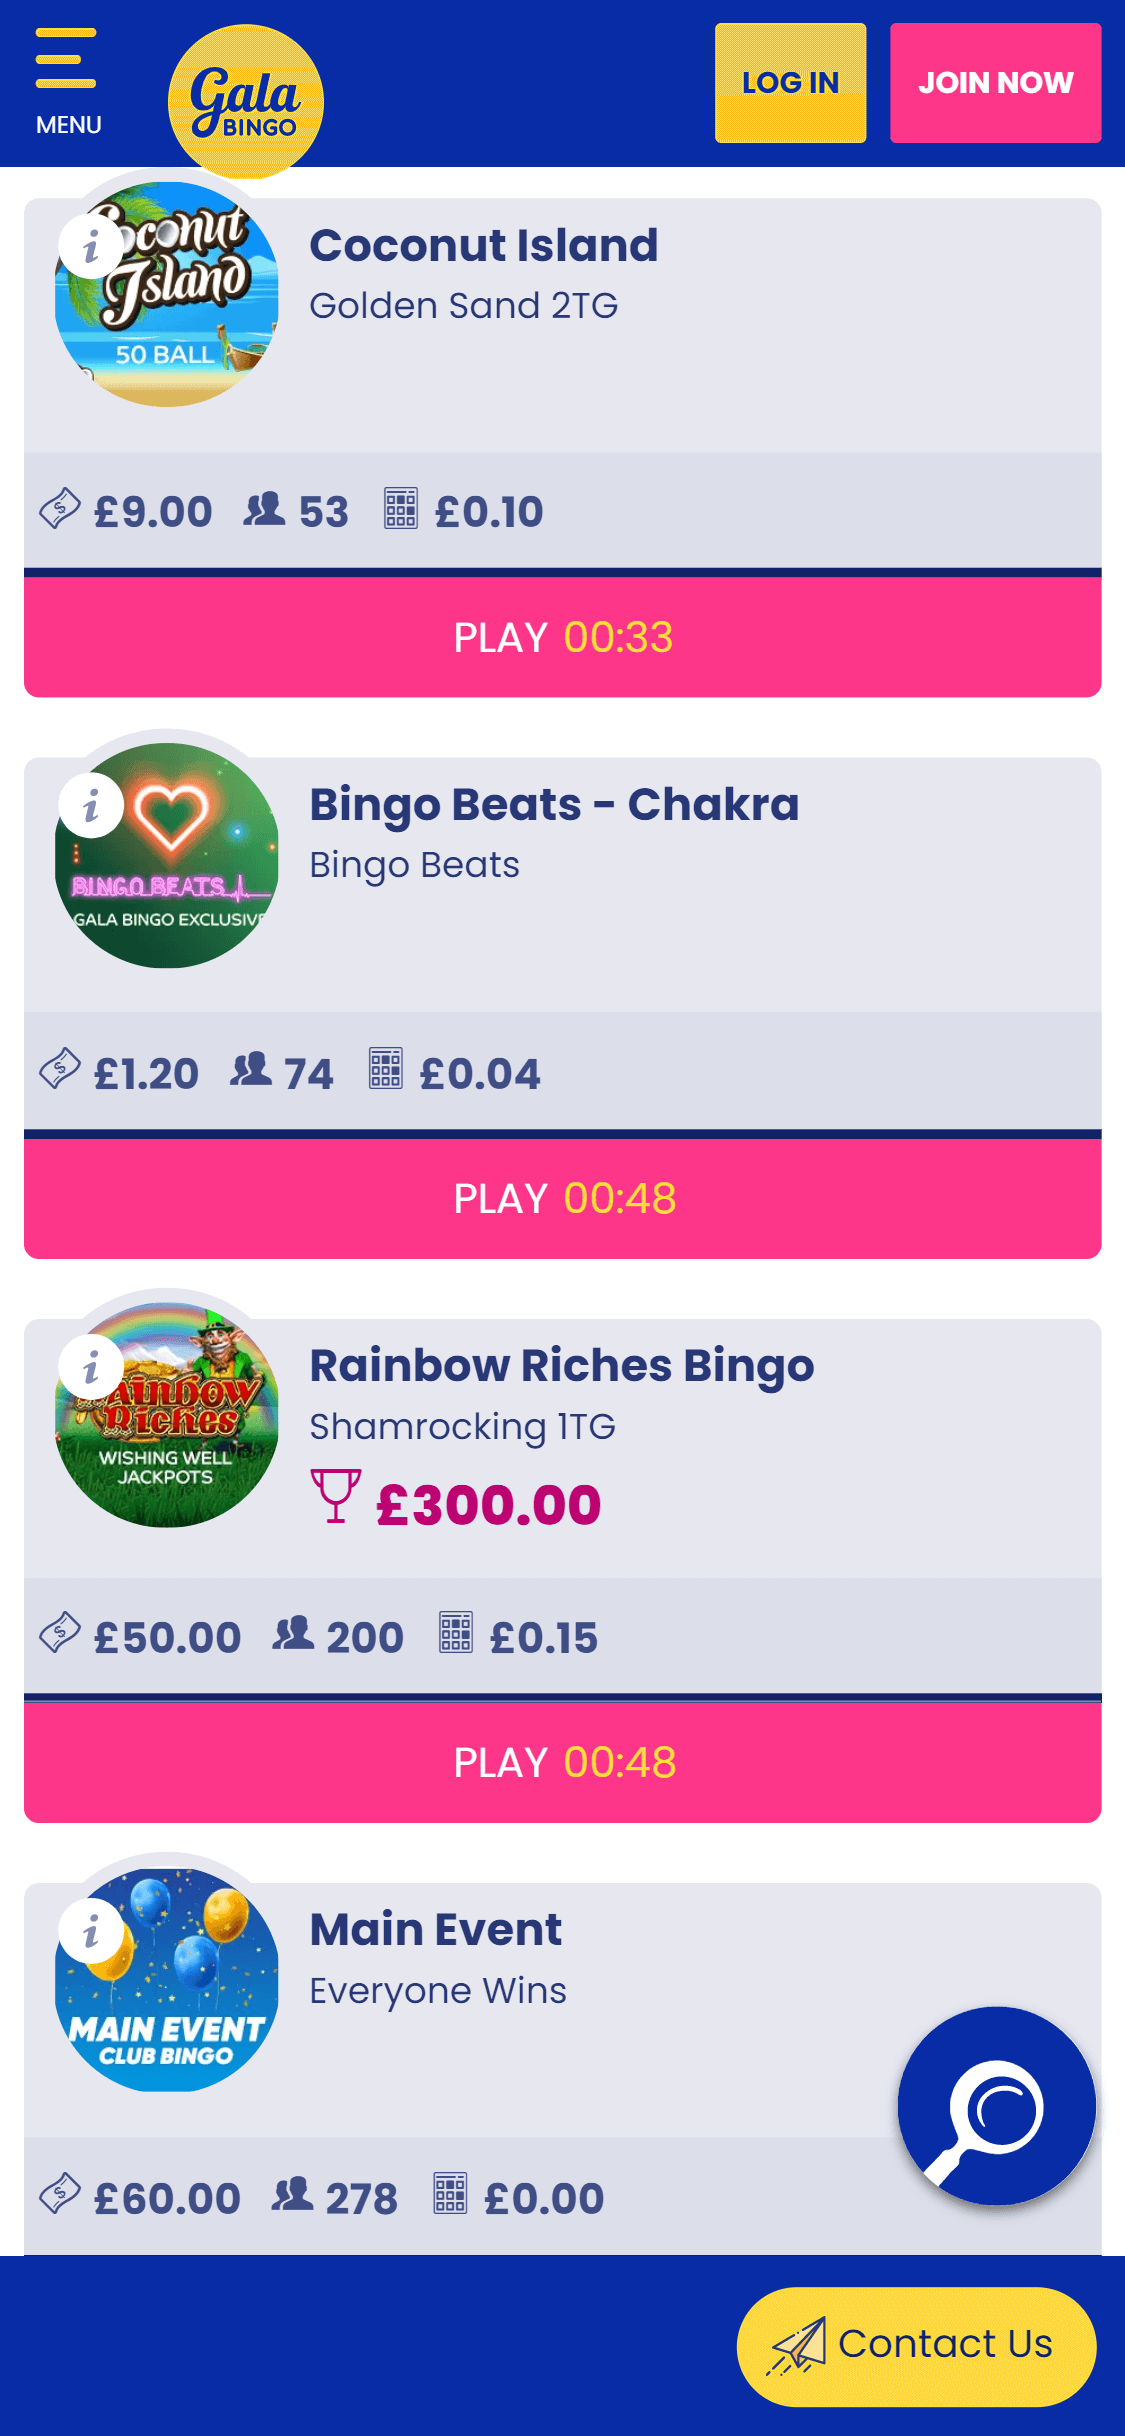 Gala Bingo Online Reviews